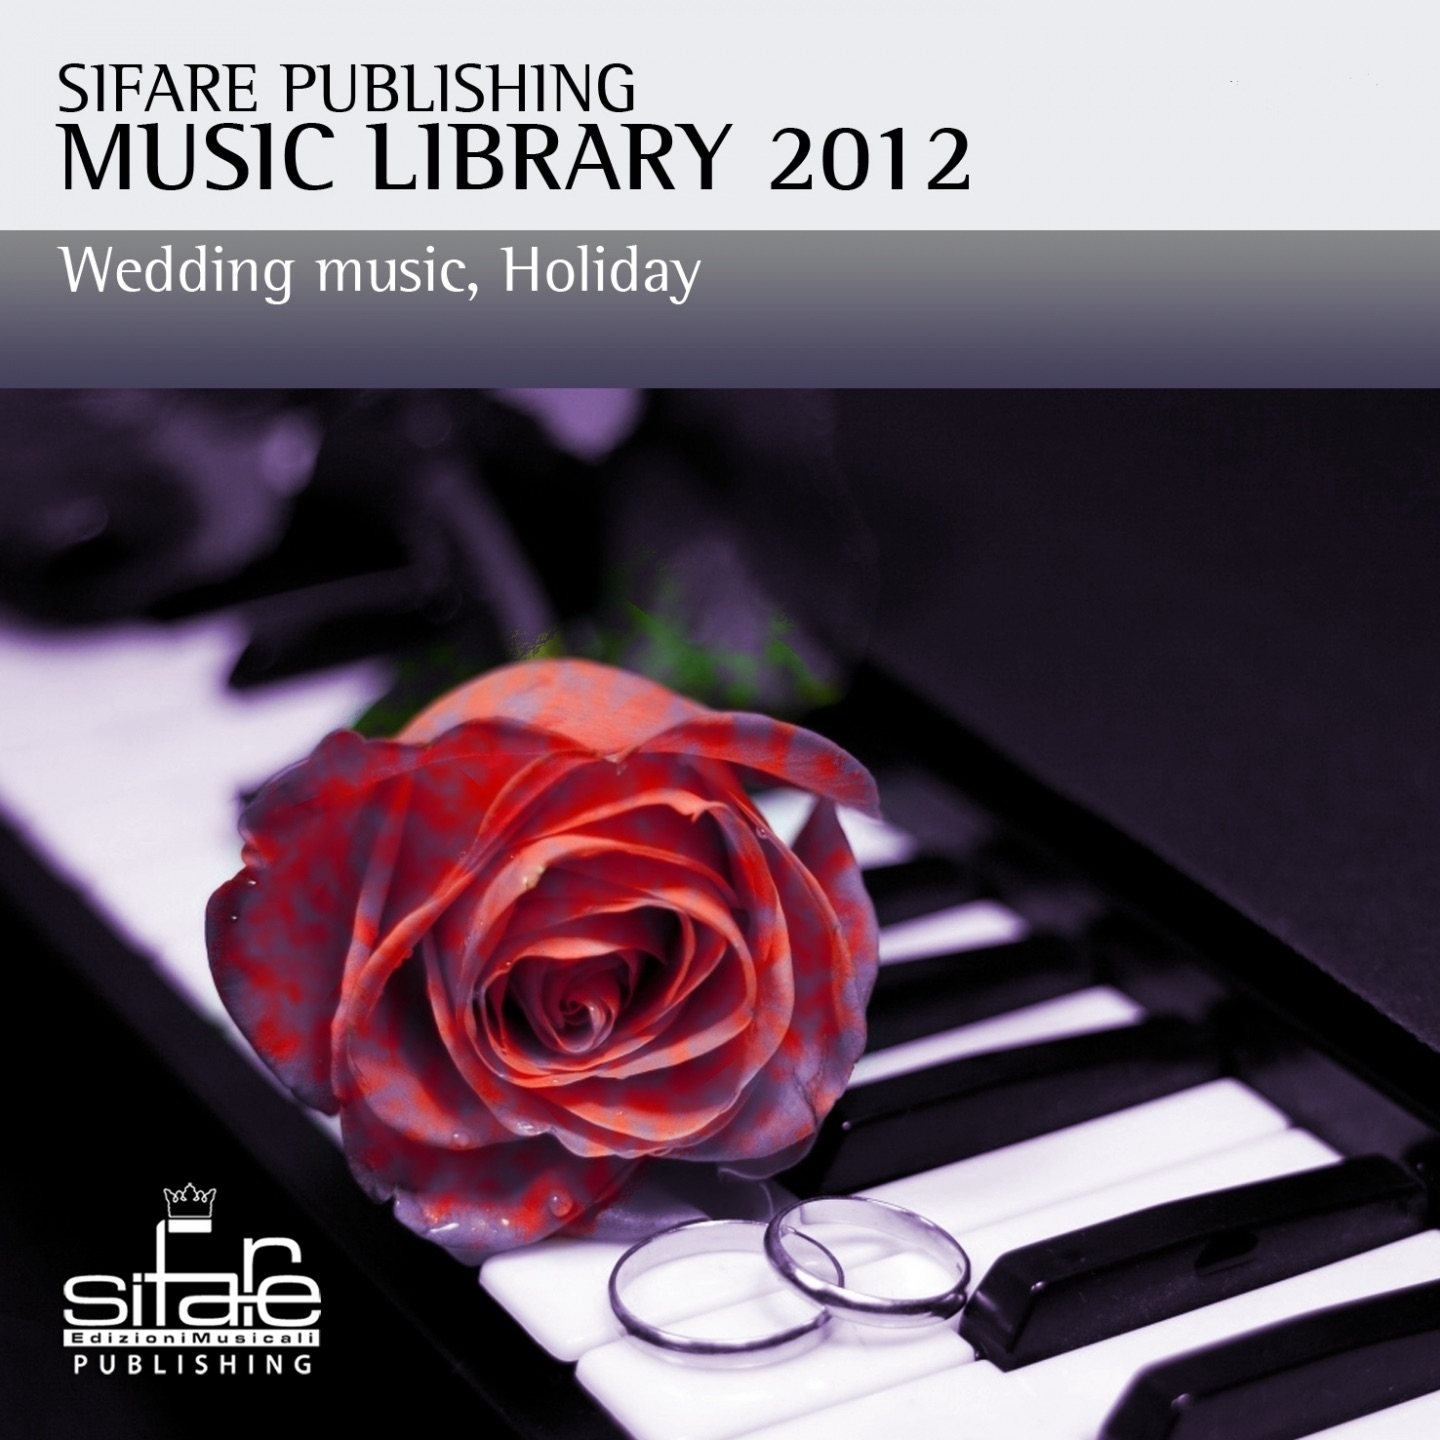 Careless Whisper (S.valentine, Holiday, wedding Music, Music Library 2012) - Single